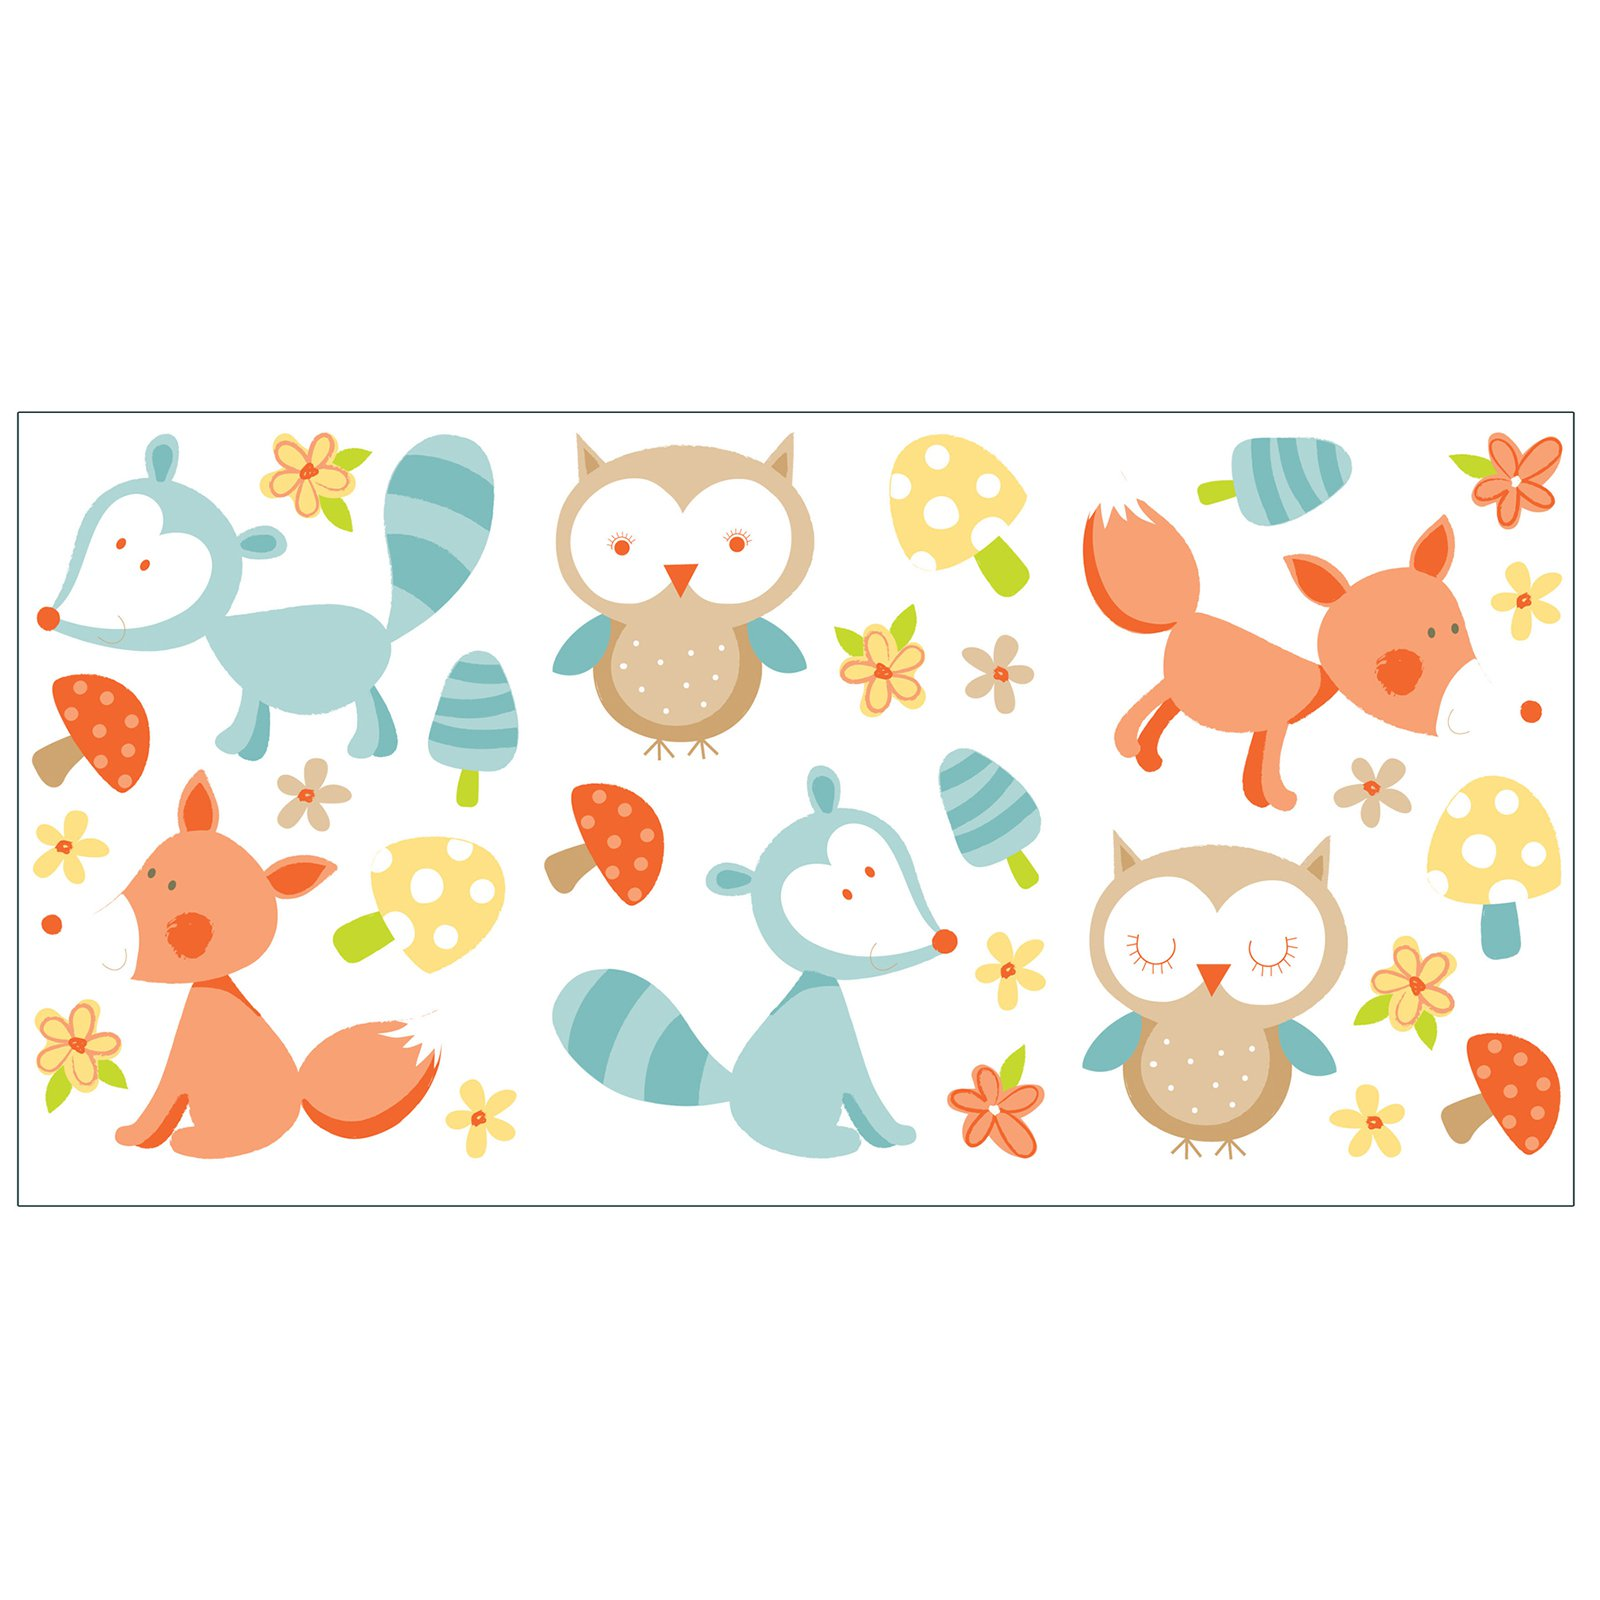 Fun4Walls Forest Friends Wall Stickers Set of 58 by Fun4Walls